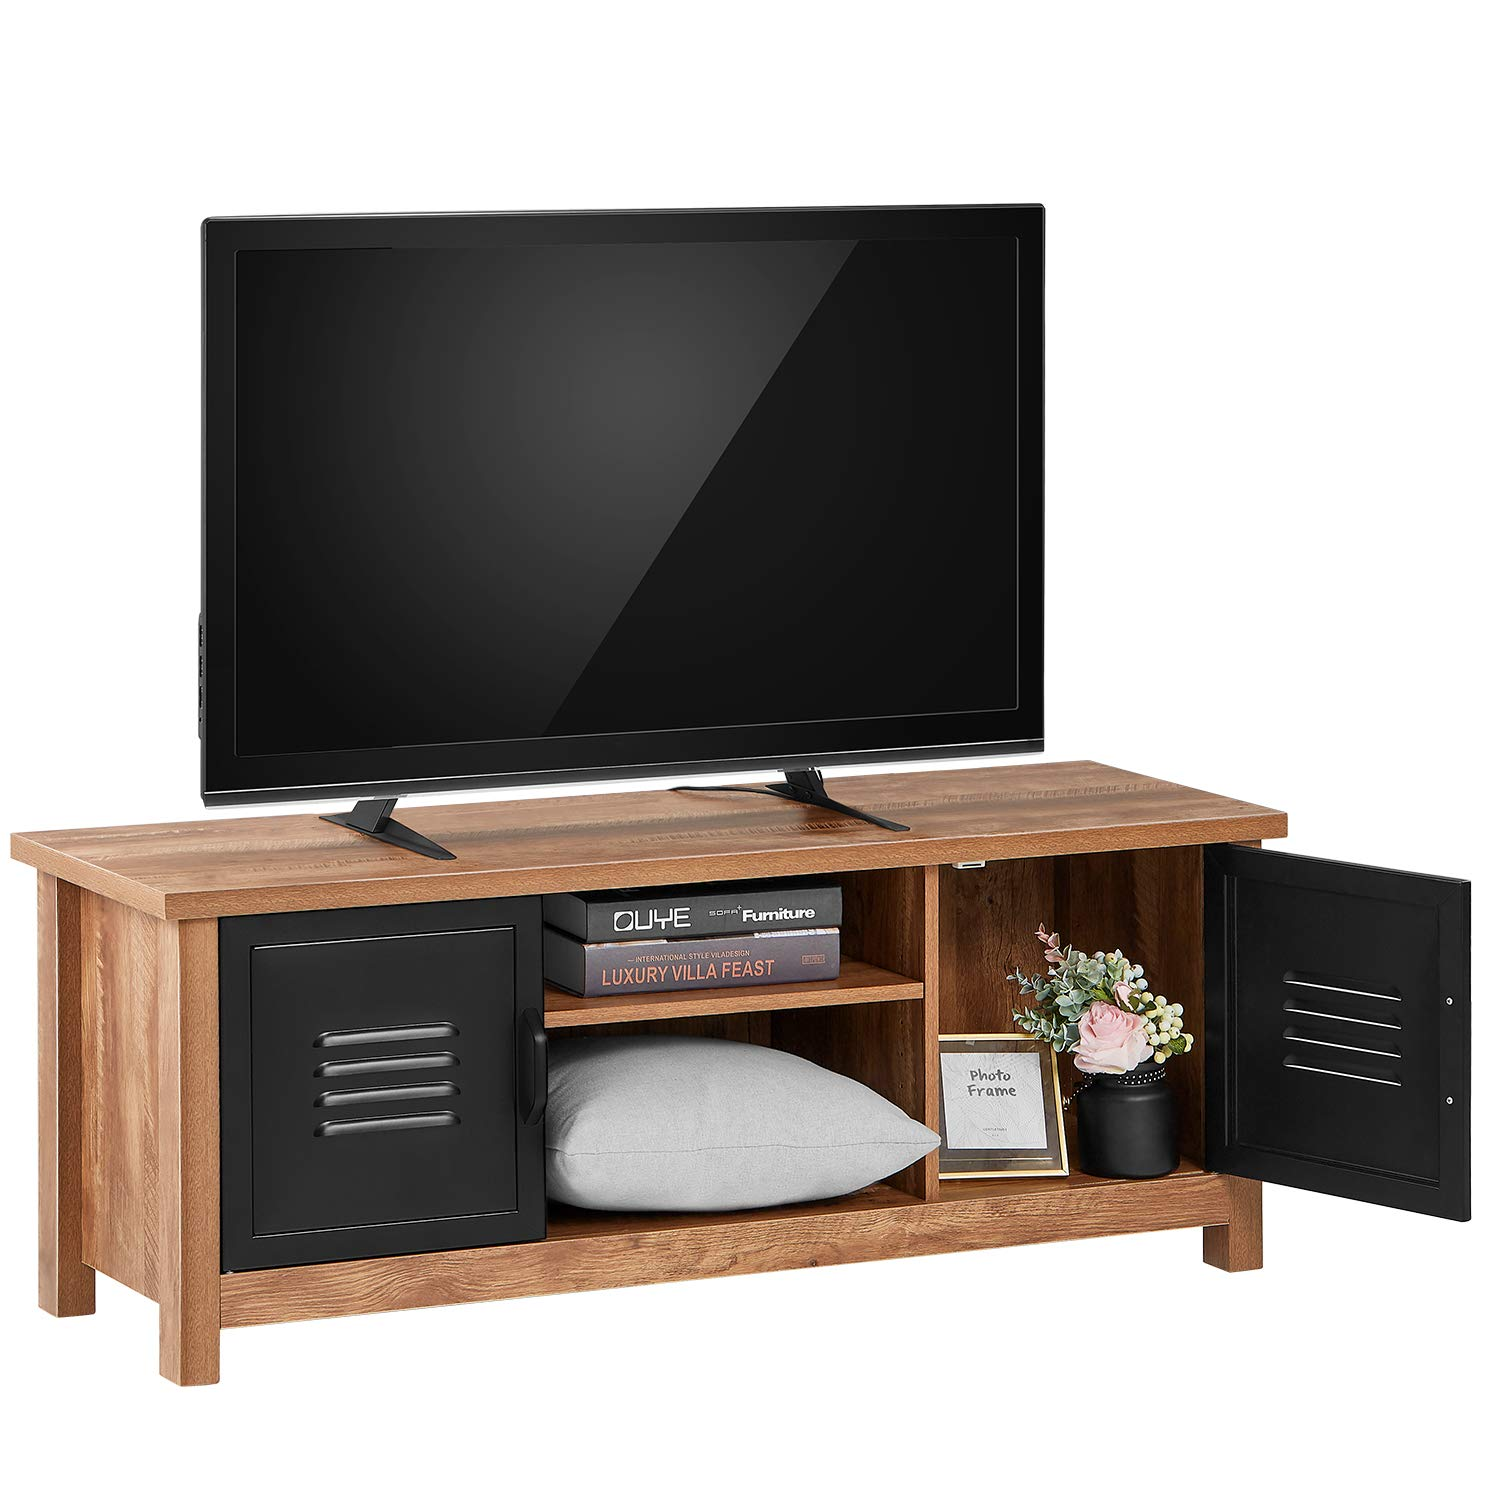 kealive TV Stand Wood Media Console for TV up to 50'' Modern Rustic Entertainment Center, Solid Carbon Steel Cabinet Doors and 2 Shelf Storage Video Gaming Consoles Home Furniture Living Room, Oak by kealive